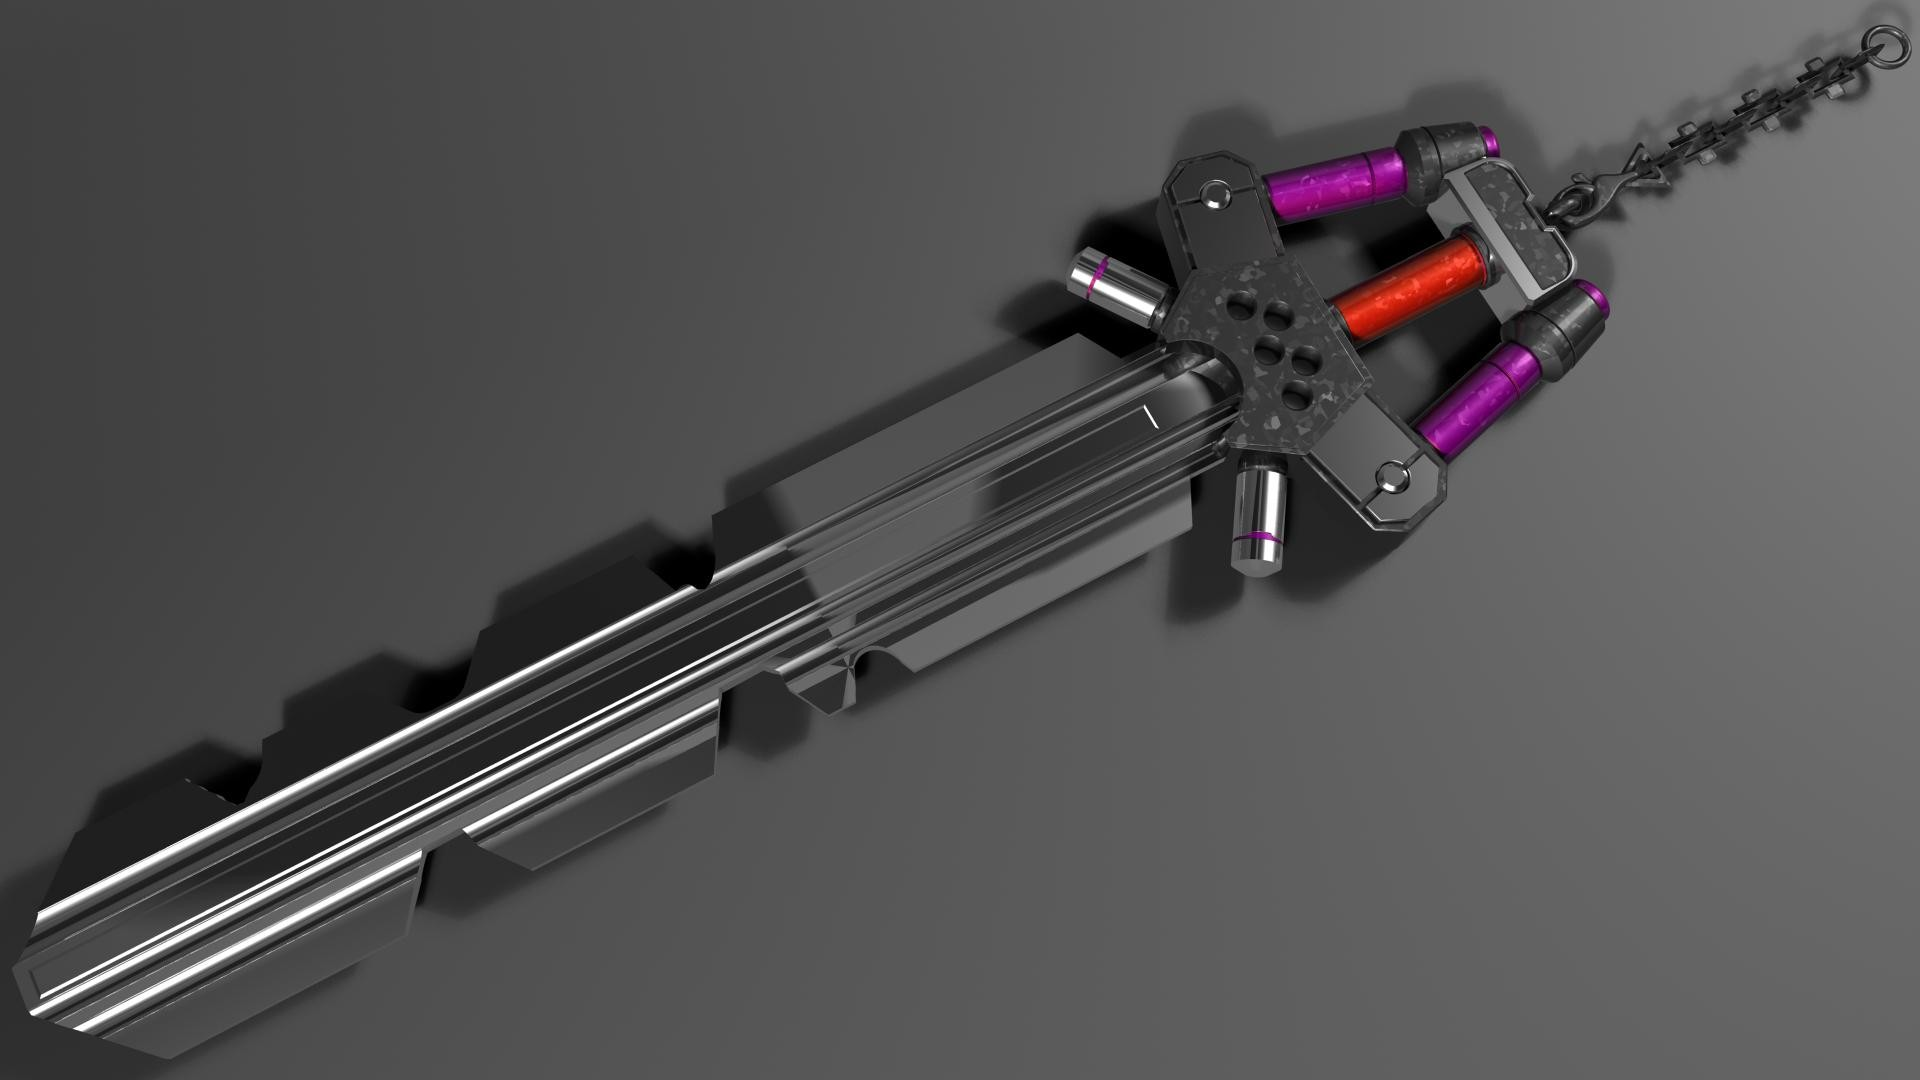 1920x1080 fenrir keyblade by angeldad83 fenrir keyblade by angeldad83